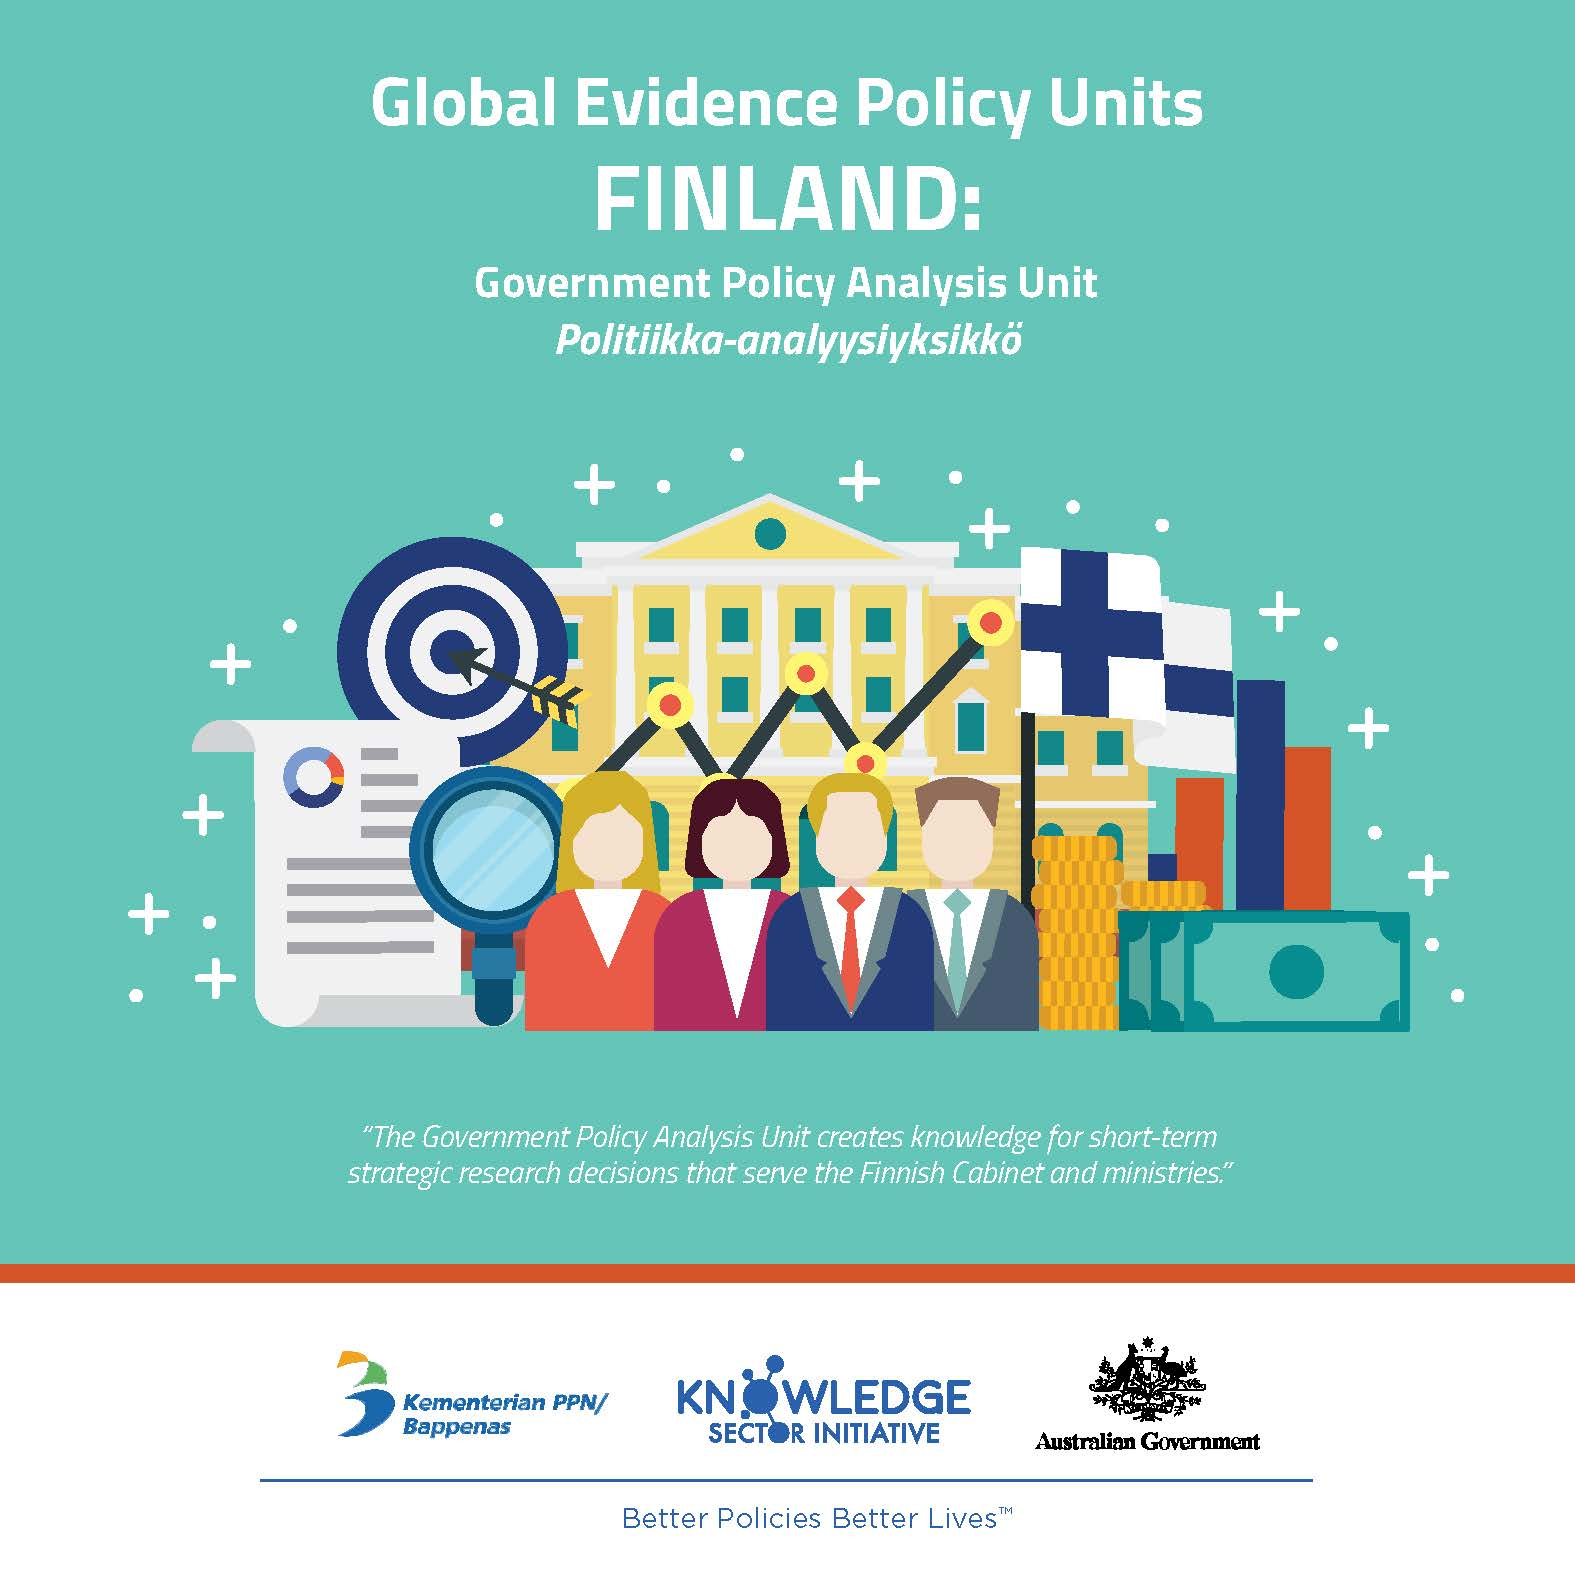 Evidence Policy Unit in Finland: the Government Policy Analysis Unit (Politiikka-analyysiyksikkö)